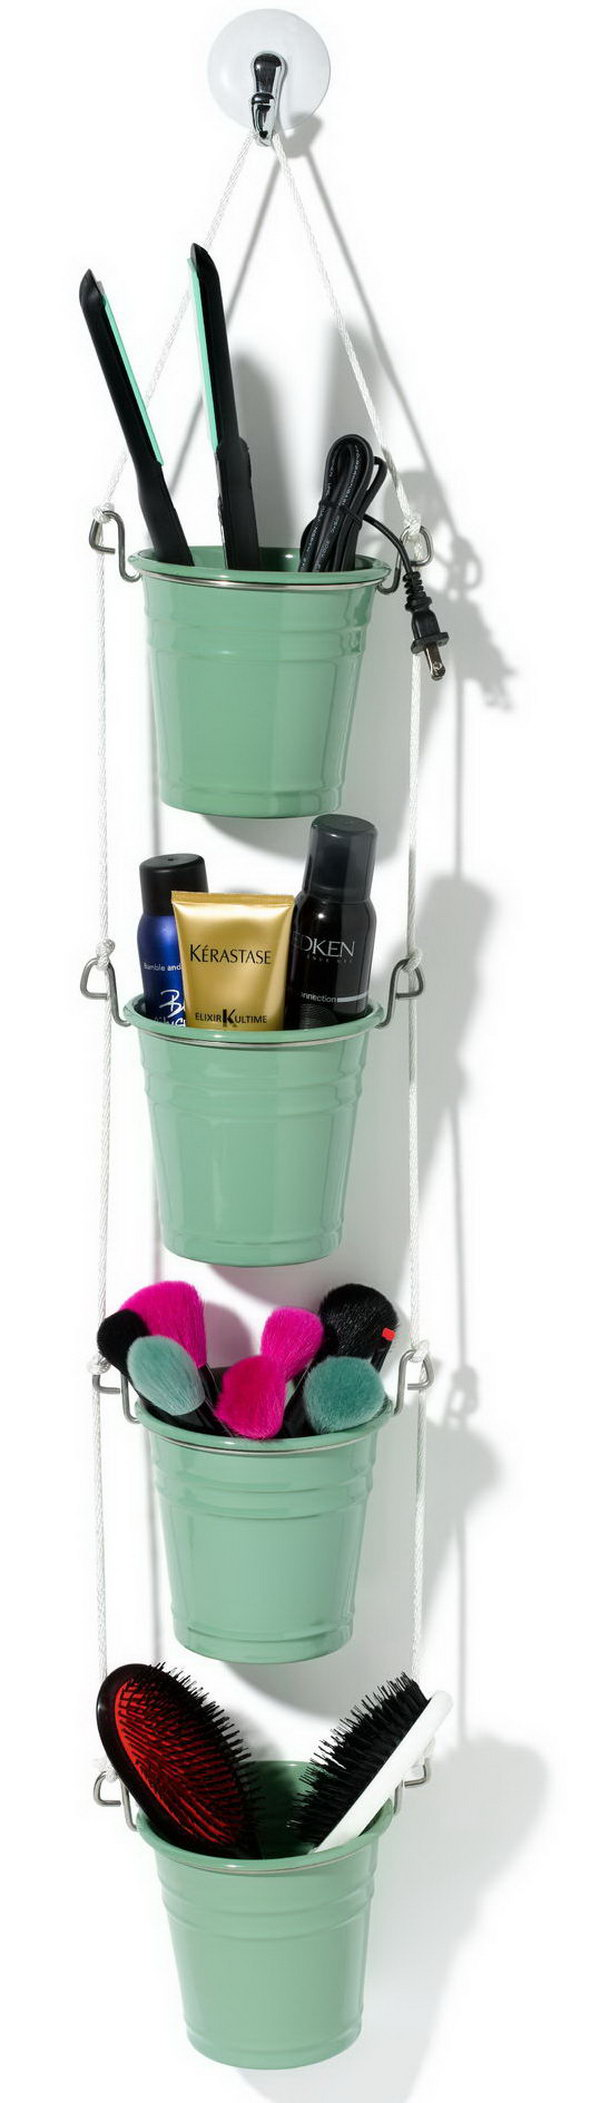 Cute Hanging Organizer for makeup. This cute little hanging basket makeup organizer is really a great gift on giving on Mother's Day. Start to make one for your beloved mother. Step-by-step tutorials here.